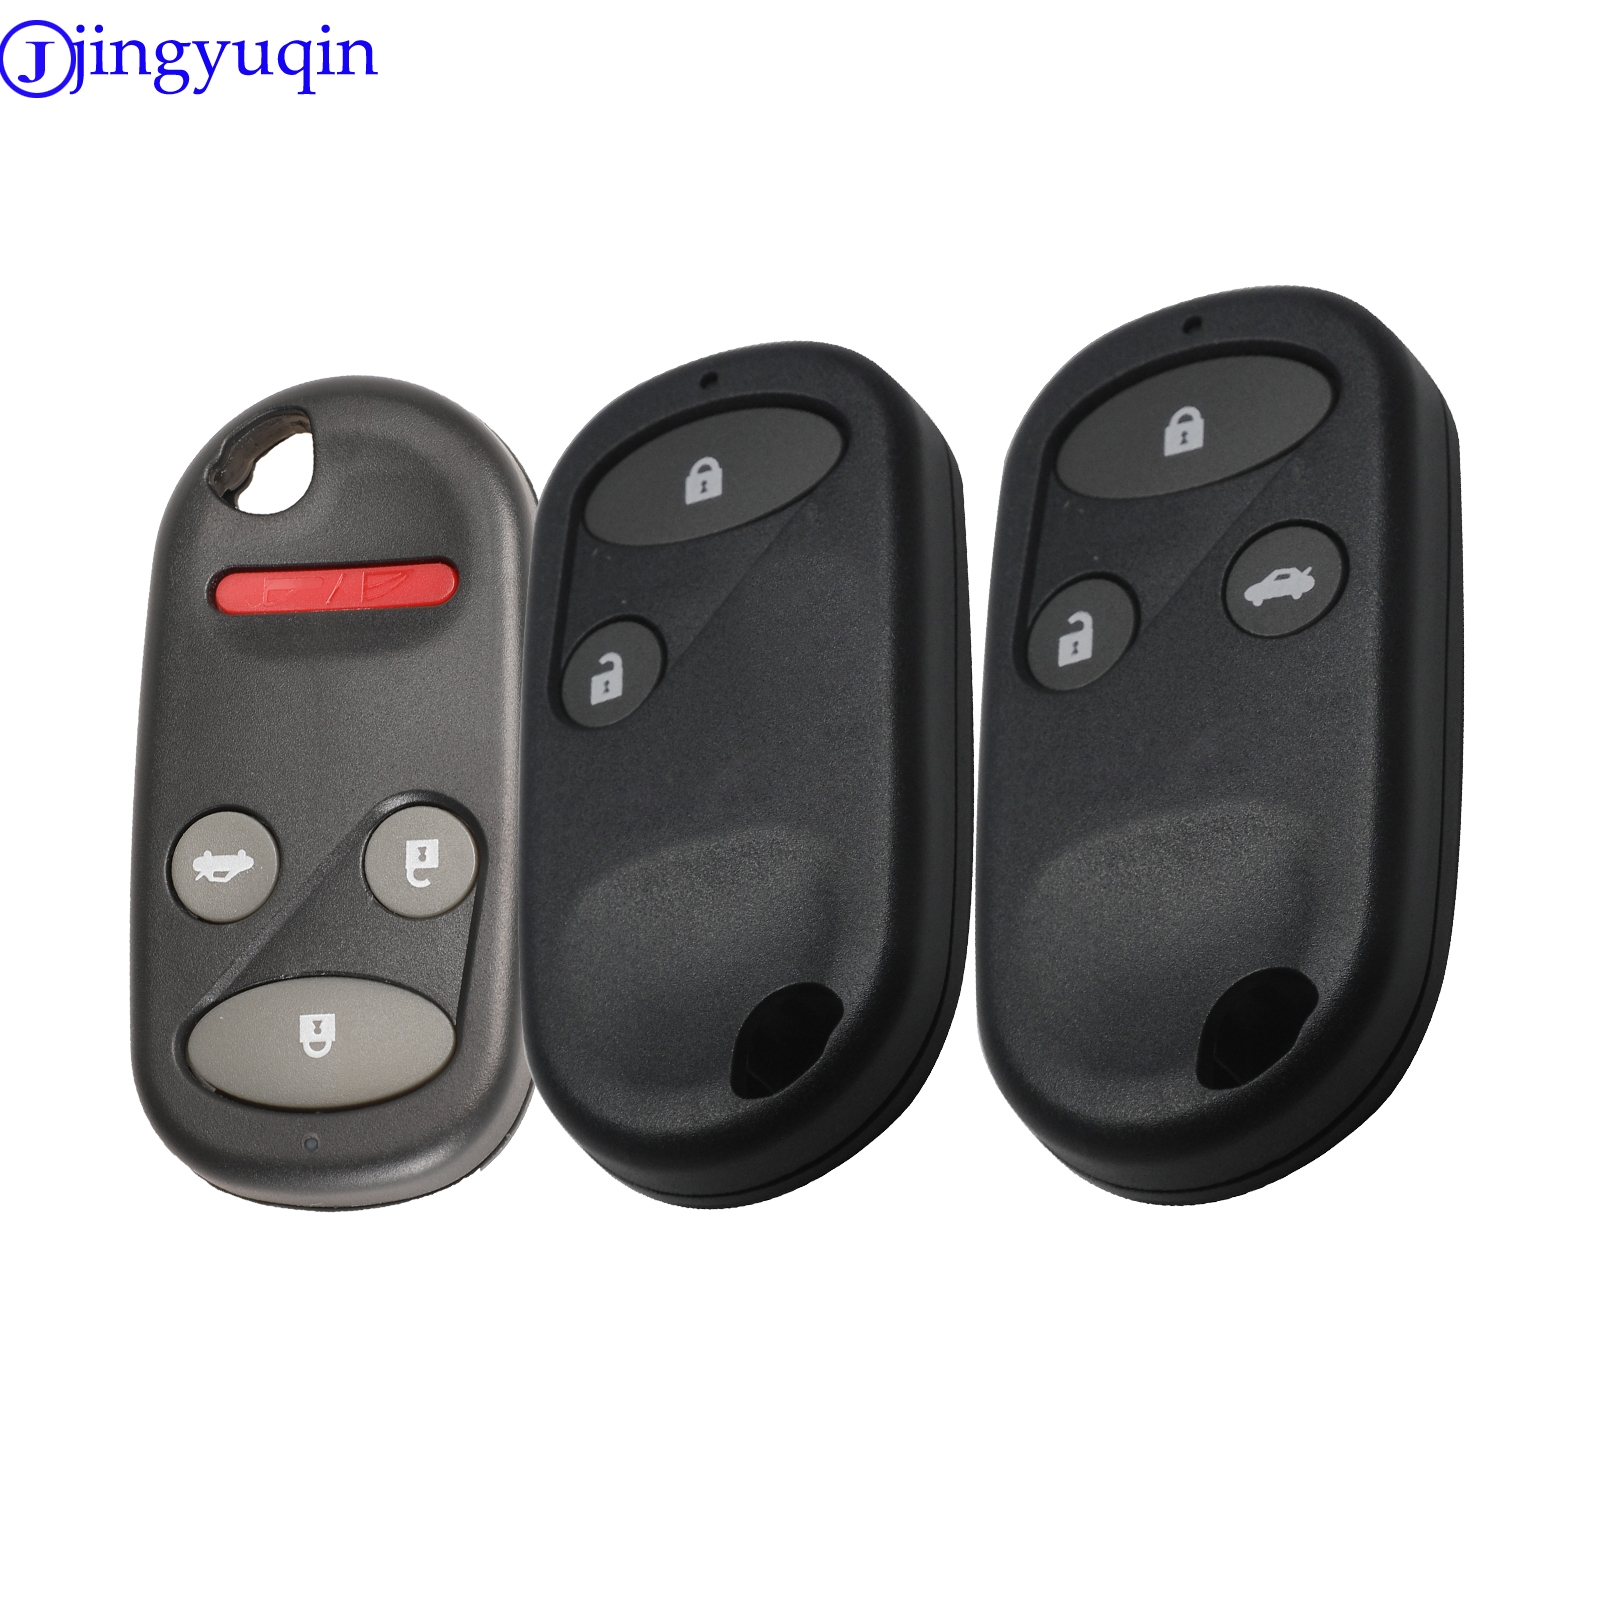 jingyuqin 2/3/4 Buttons <font><b>keyless</b></font> <font><b>remote</b></font> control key car shell quality is good for <font><b>Honda</b></font> Civic crv <font><b>remote</b></font> key image